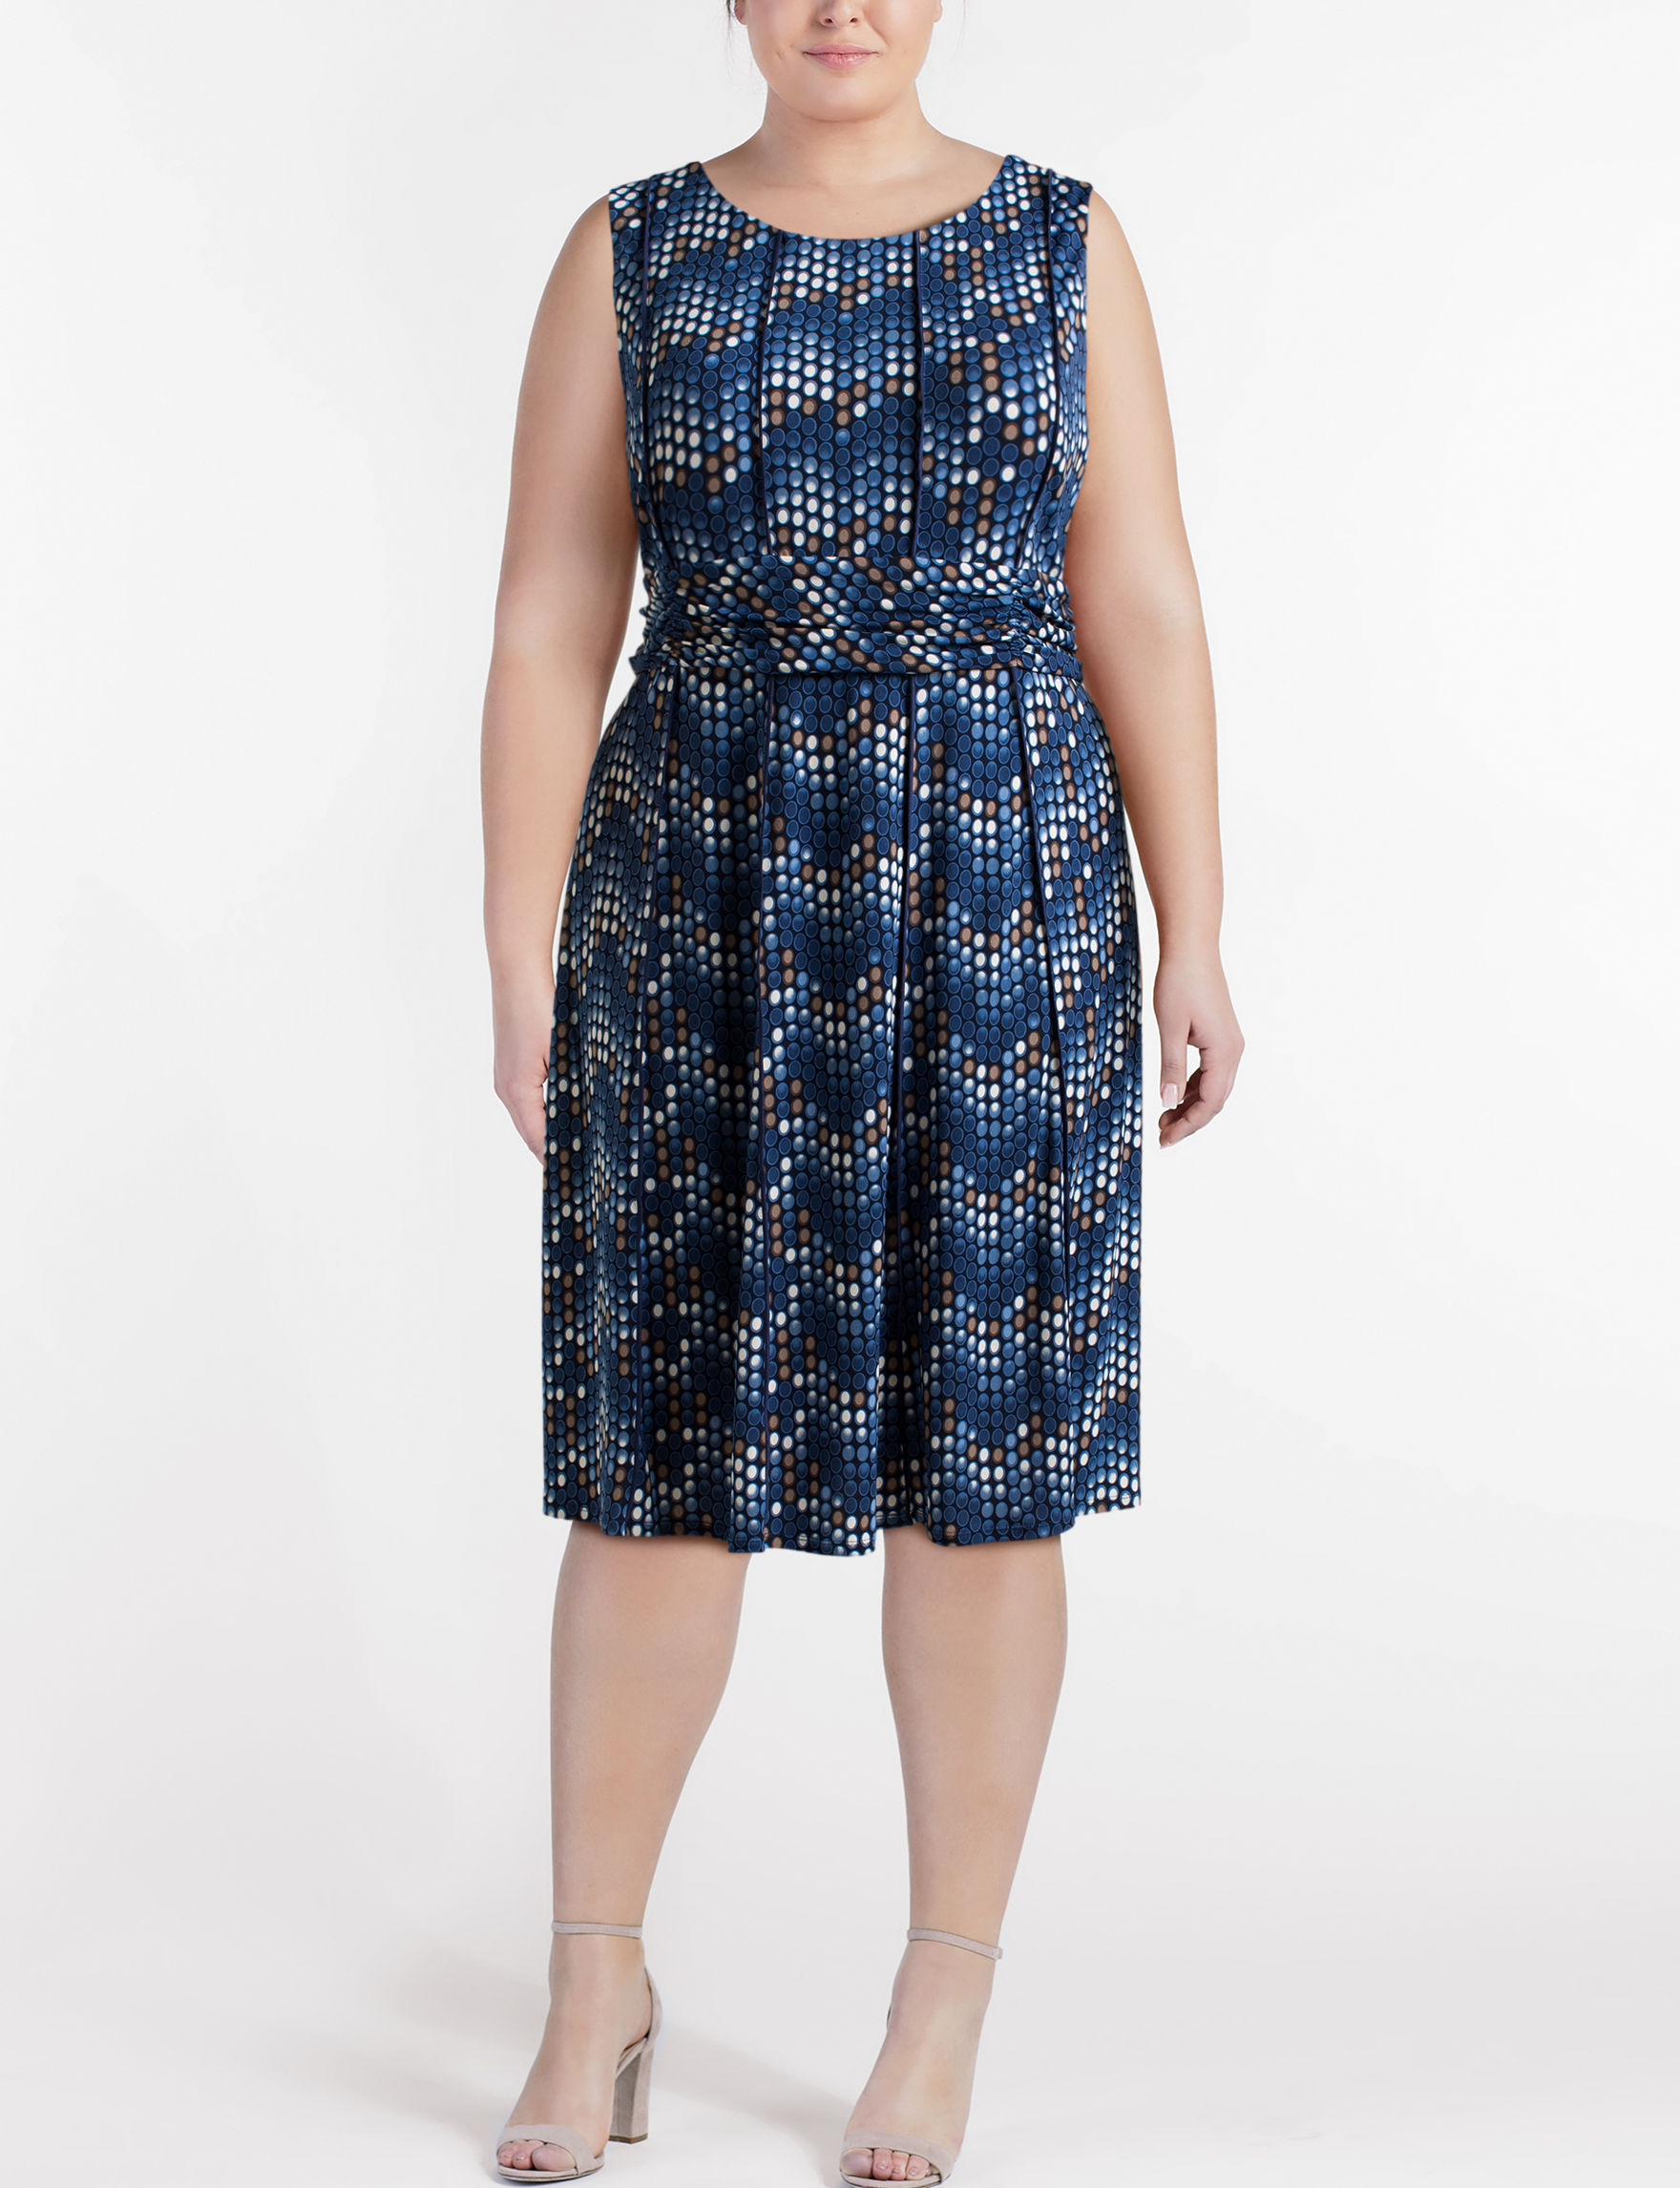 Perceptions Blue Everyday & Casual Fit & Flare Dresses